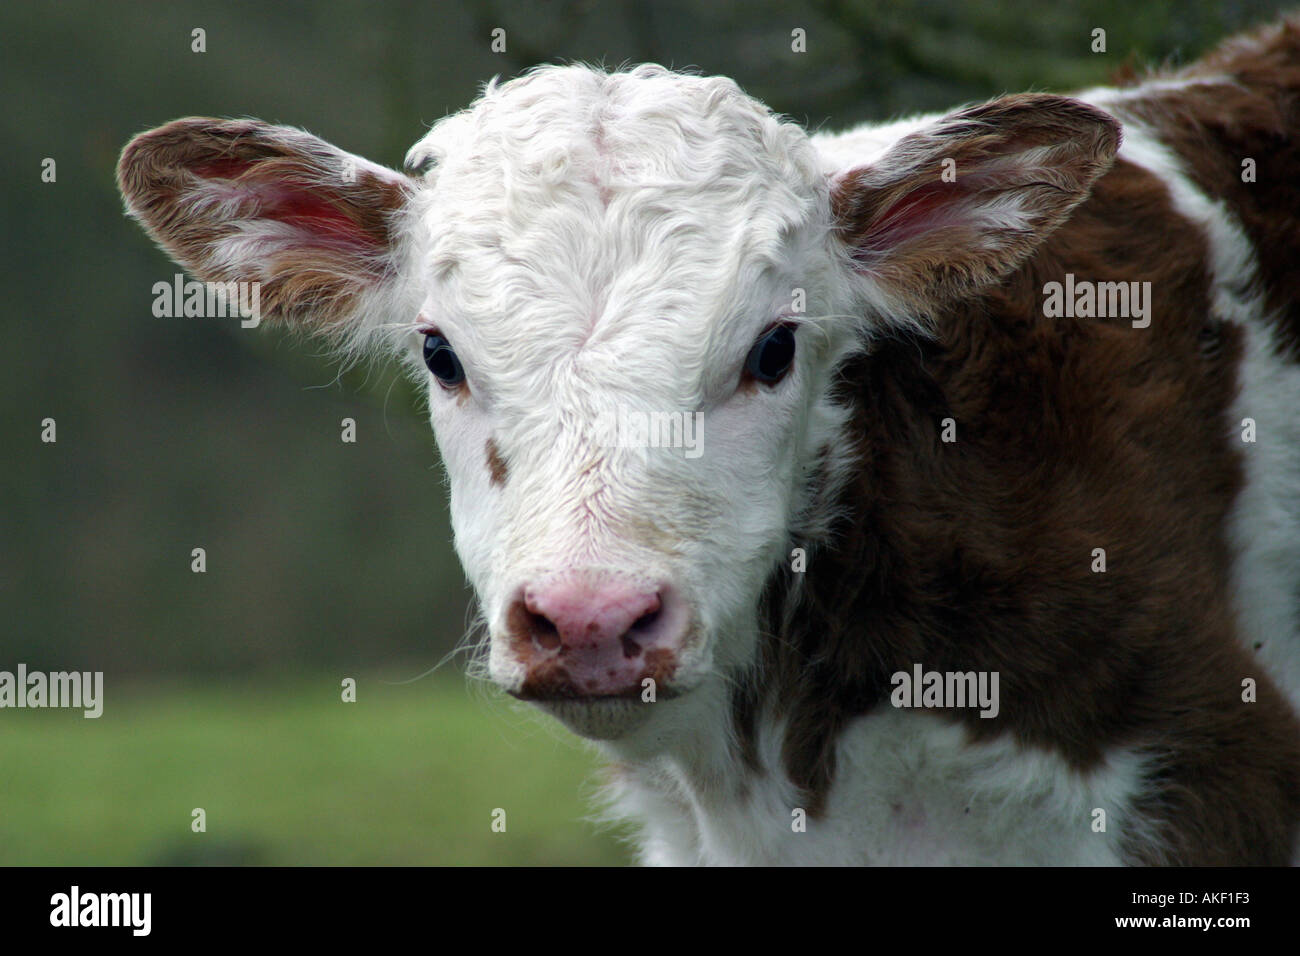 calf face - Stock Image